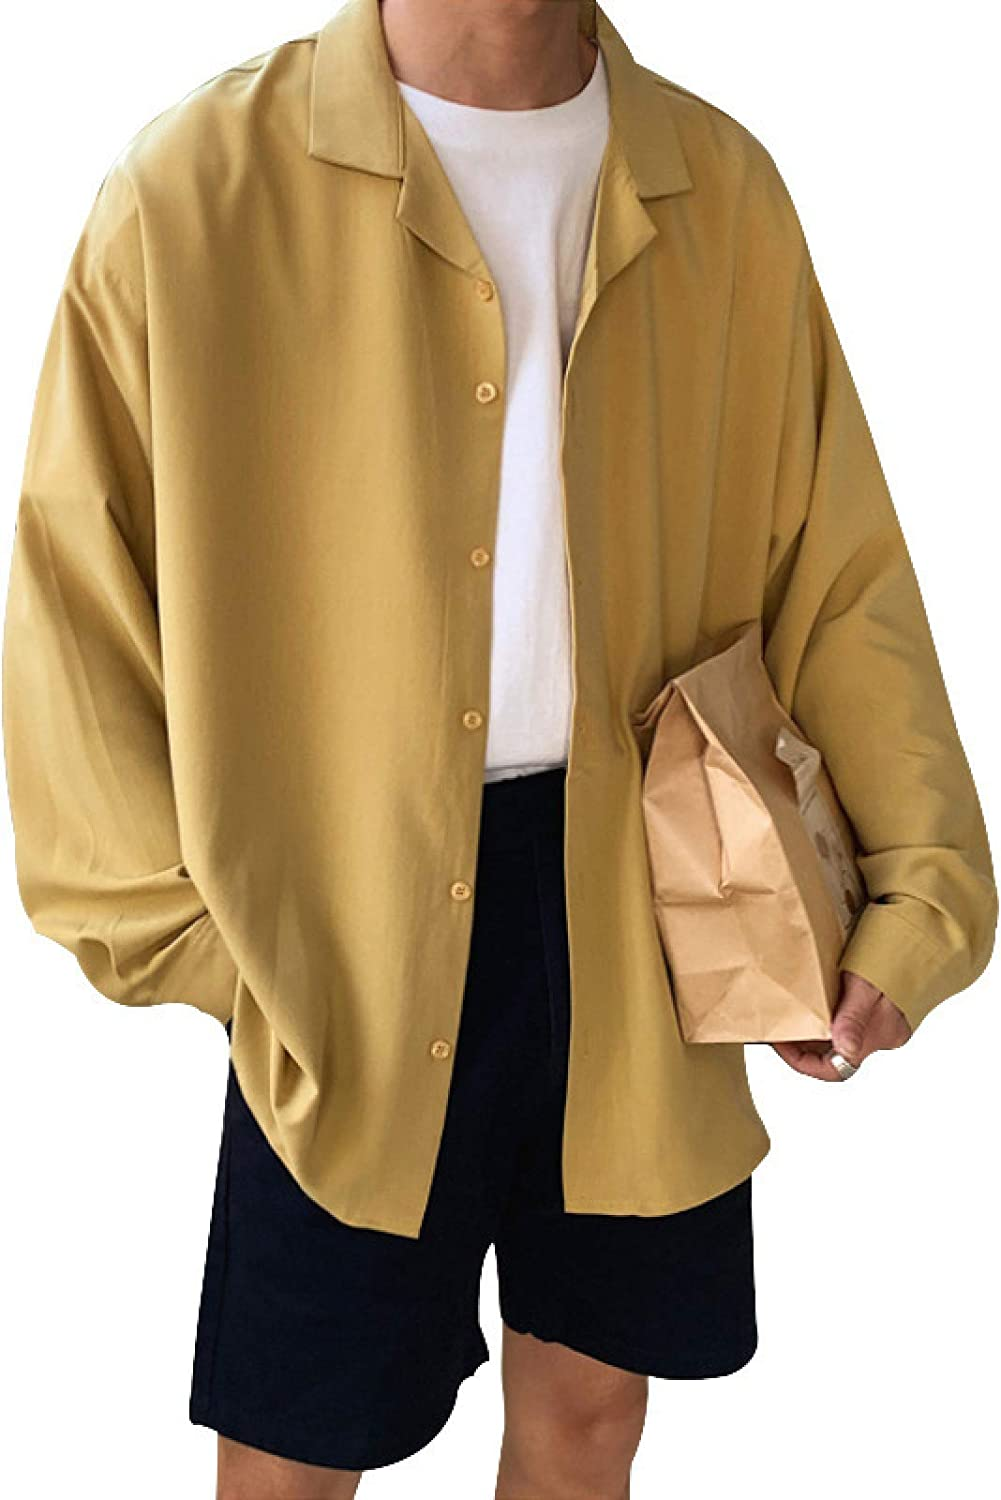 Men's Cardigan Solid Color Long Sleeves Simple and Comfortable Large Size Retro